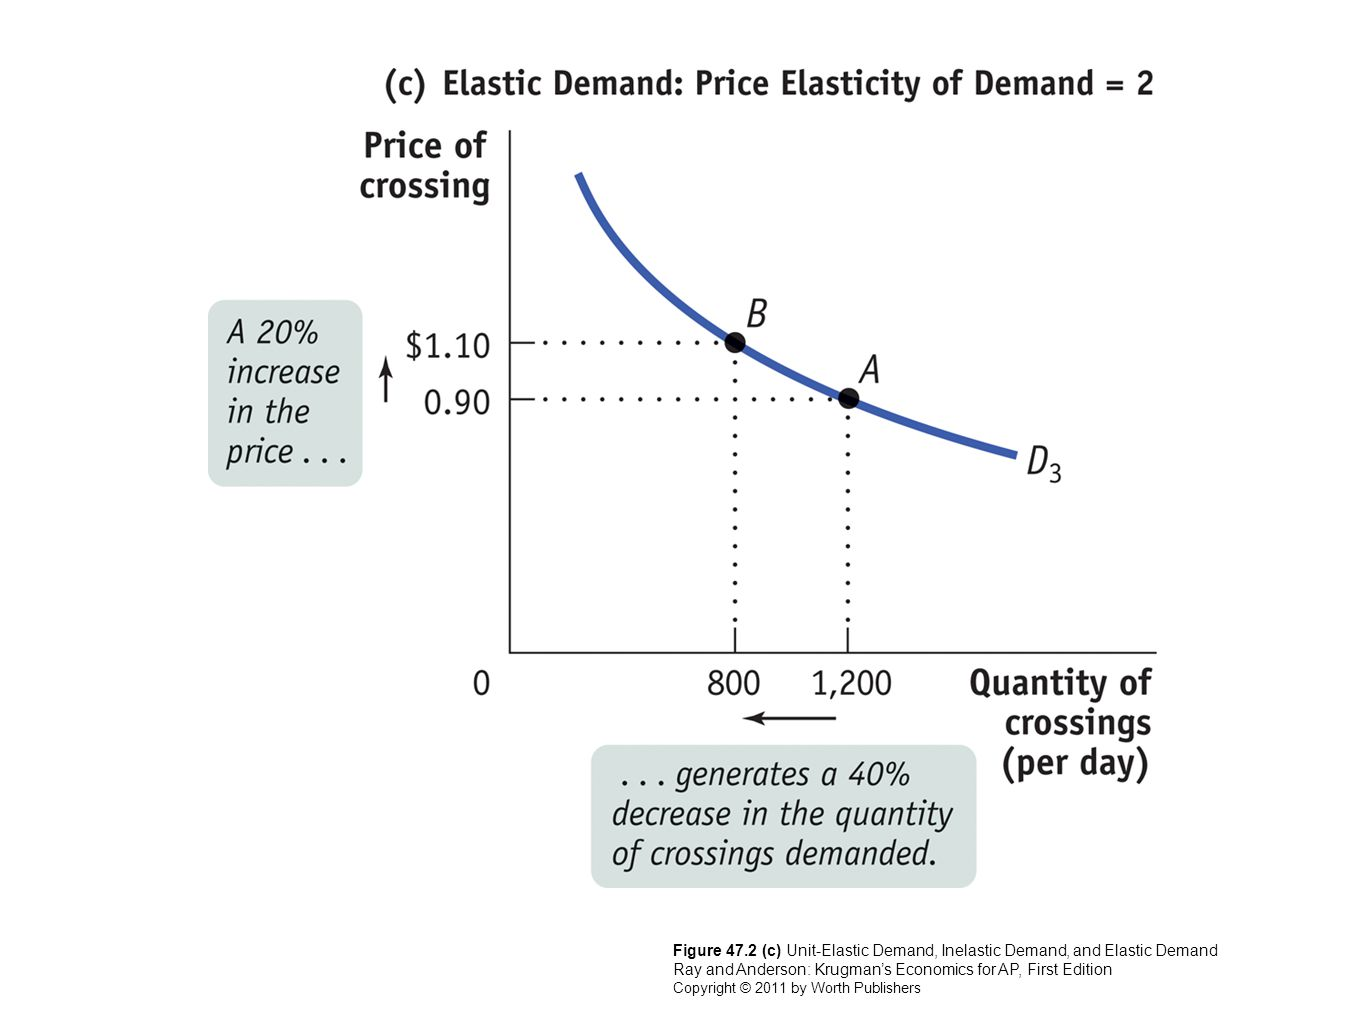 Figure 47.2 (c) Unit-Elastic Demand, Inelastic Demand, and Elastic Demand Ray and Anderson: Krugman's Economics for AP, First Edition Copyright © 2011 by Worth Publishers